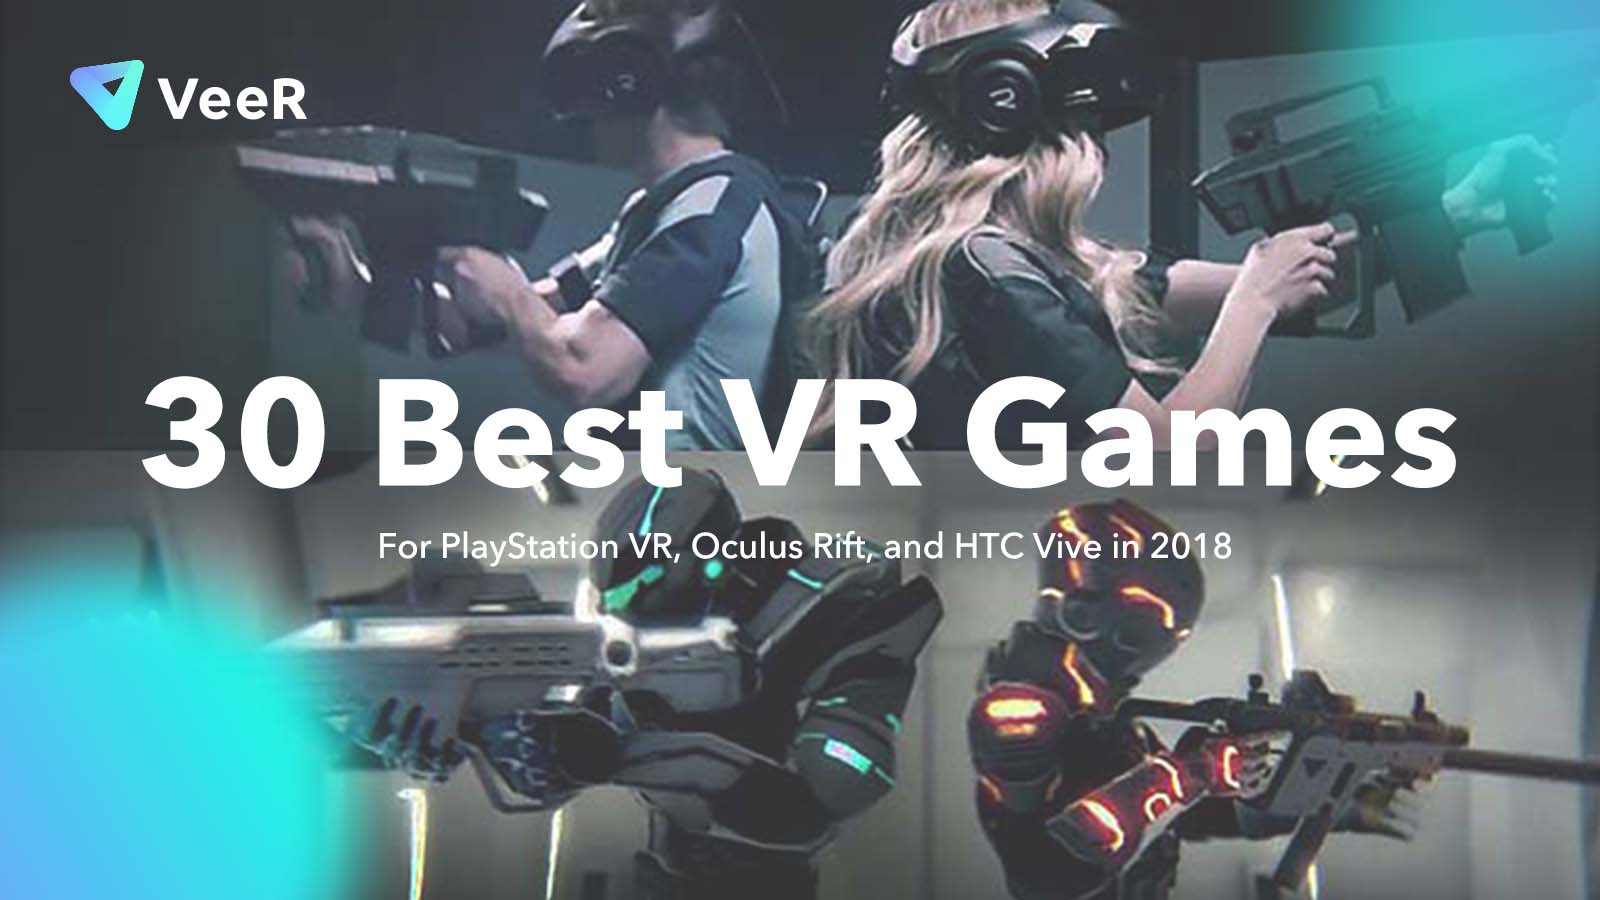 30 Best VR Games for PlayStation VR, Oculus Rift, and HTC Vive in